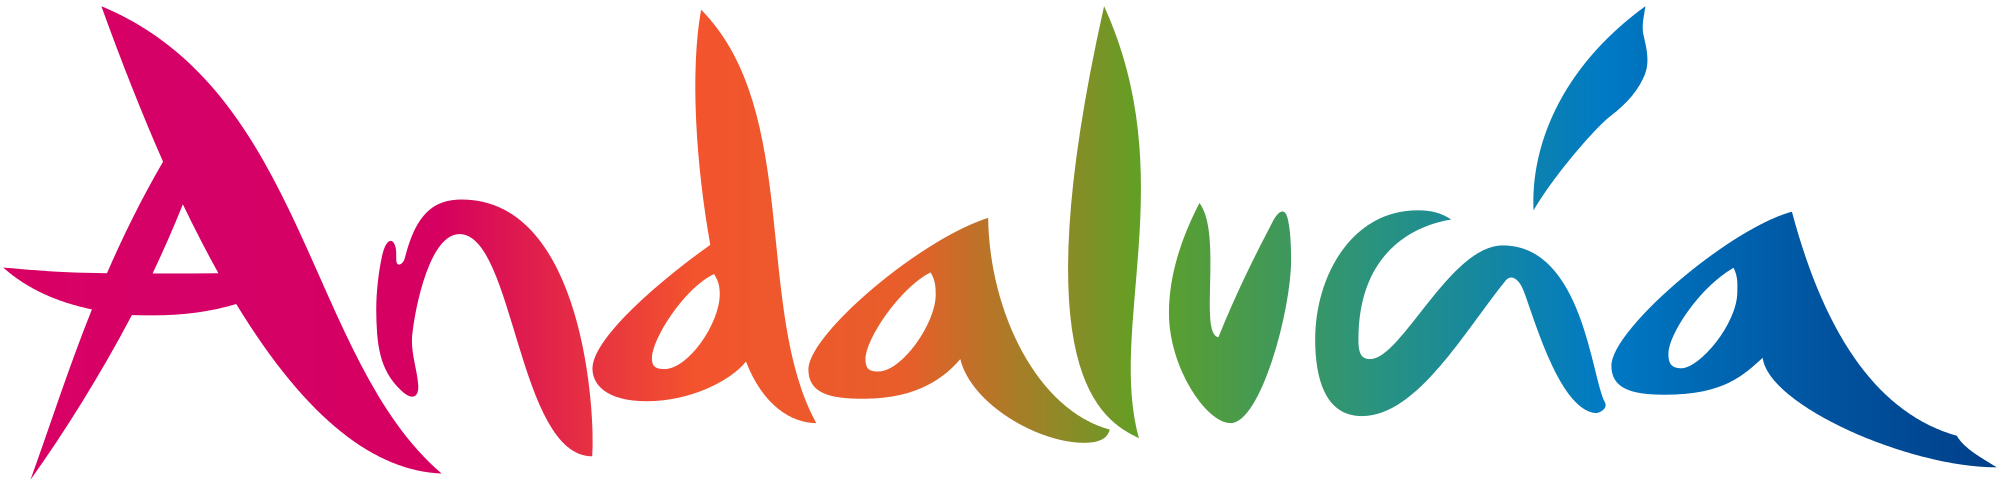 Andalucia Logo PNG